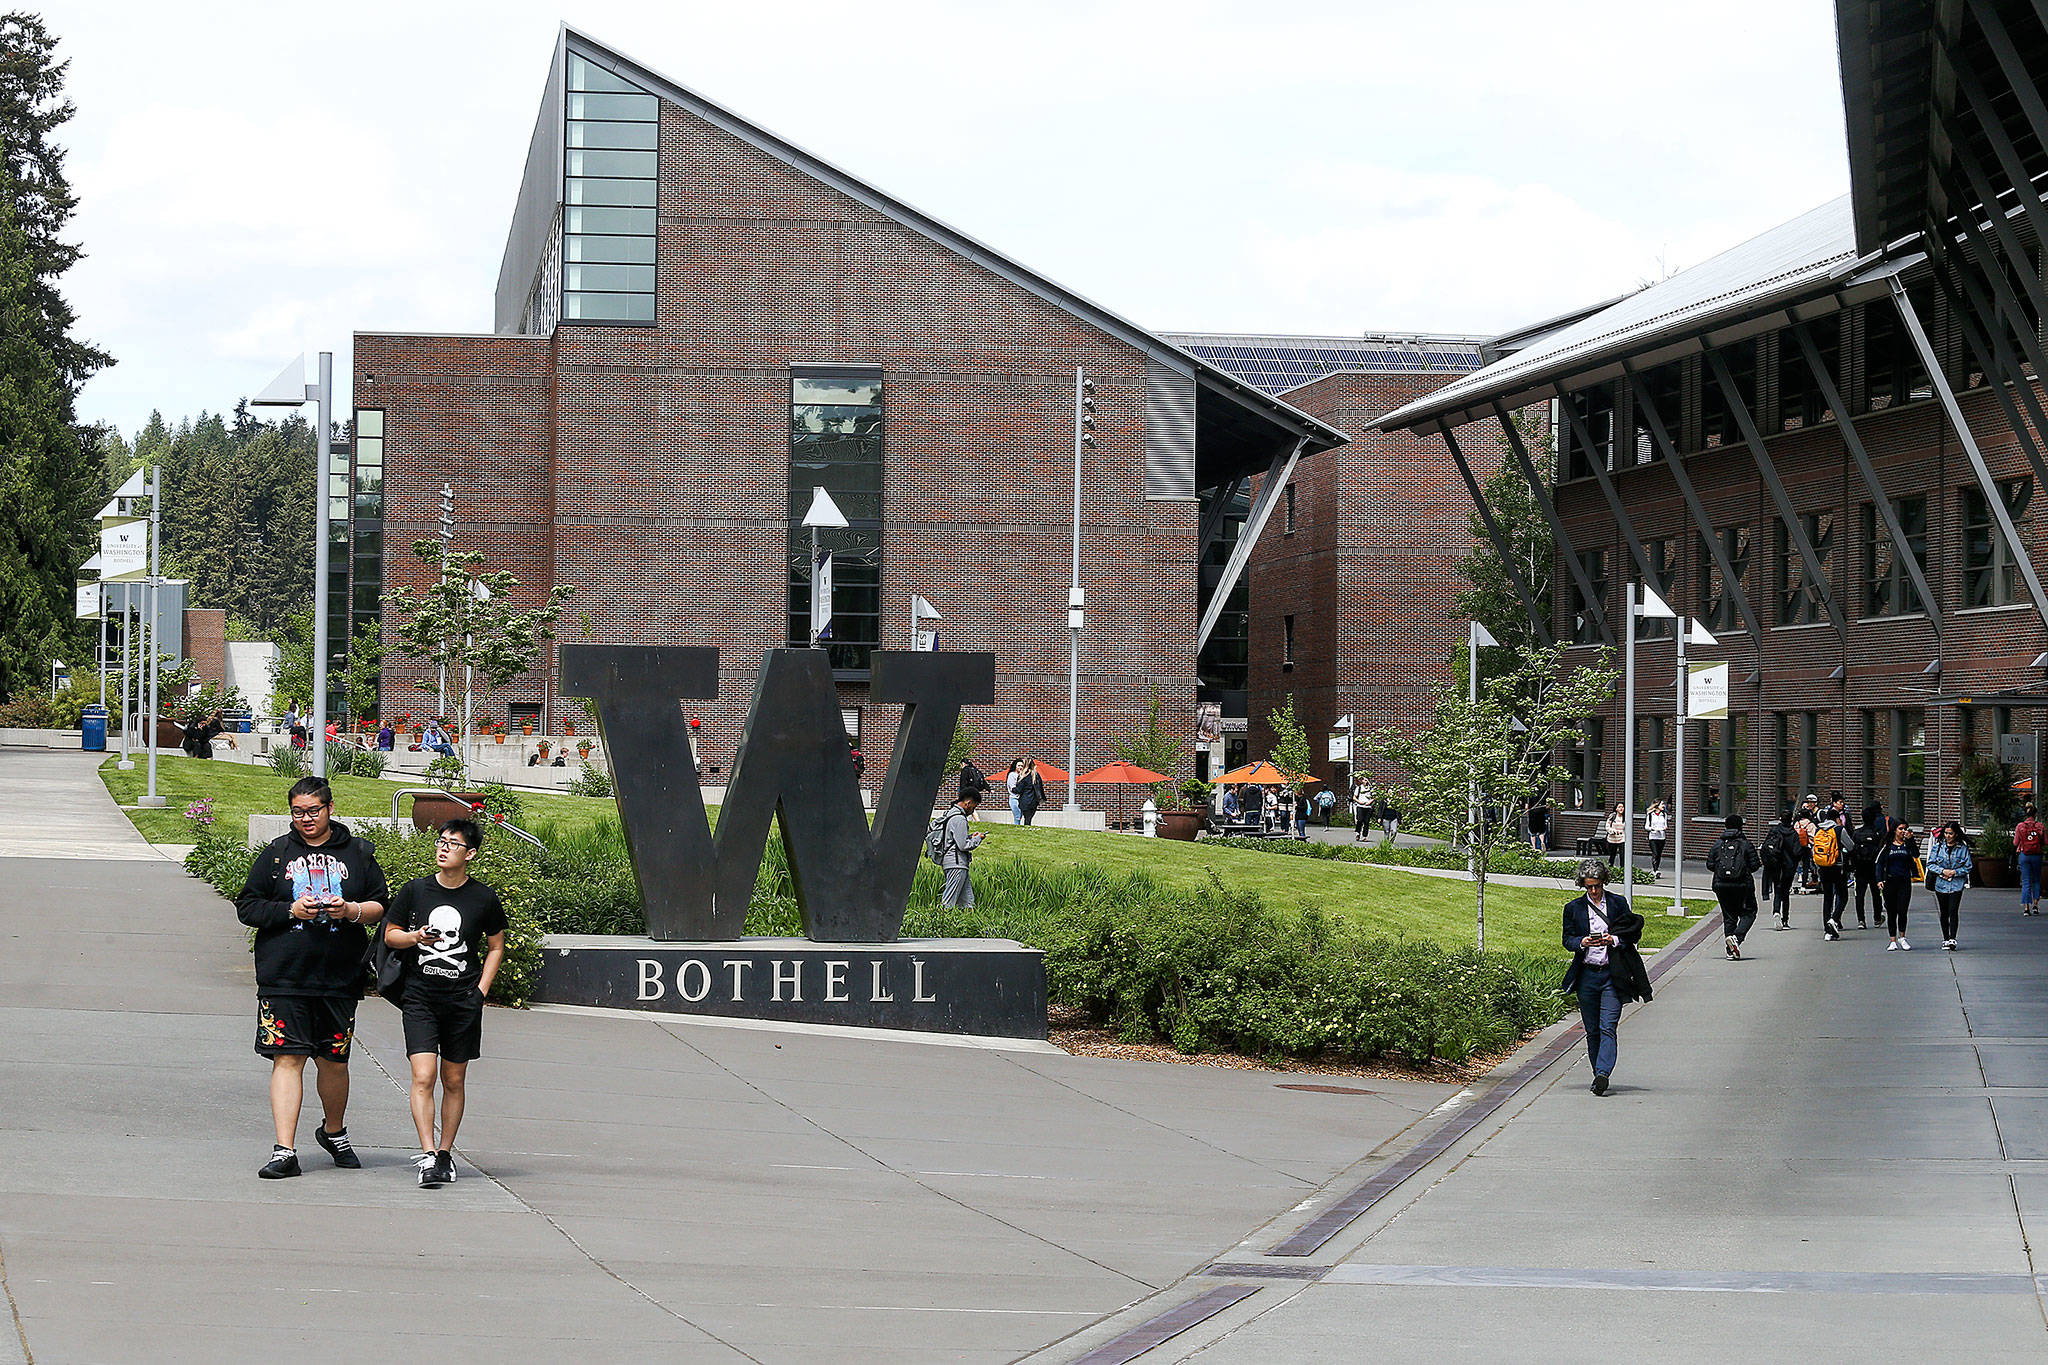 Students walk to classes at the UW Bothell campus on May 5, 2018. (Andy Bronson / Herald file)